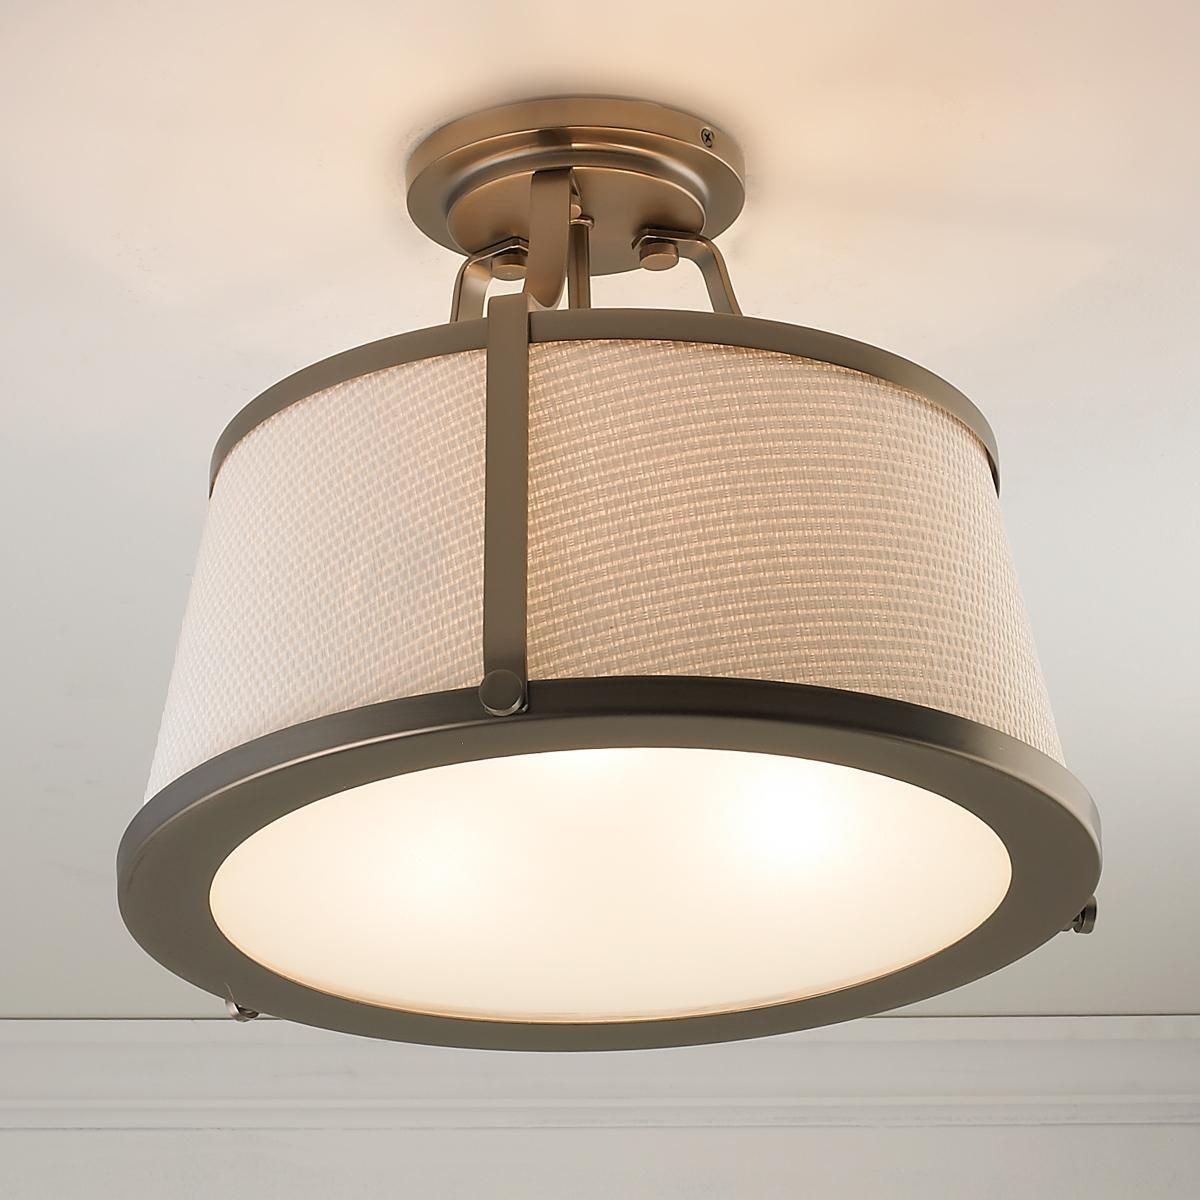 Contemporary Sophisticate Ceiling Light Ceiling Lights Ceiling